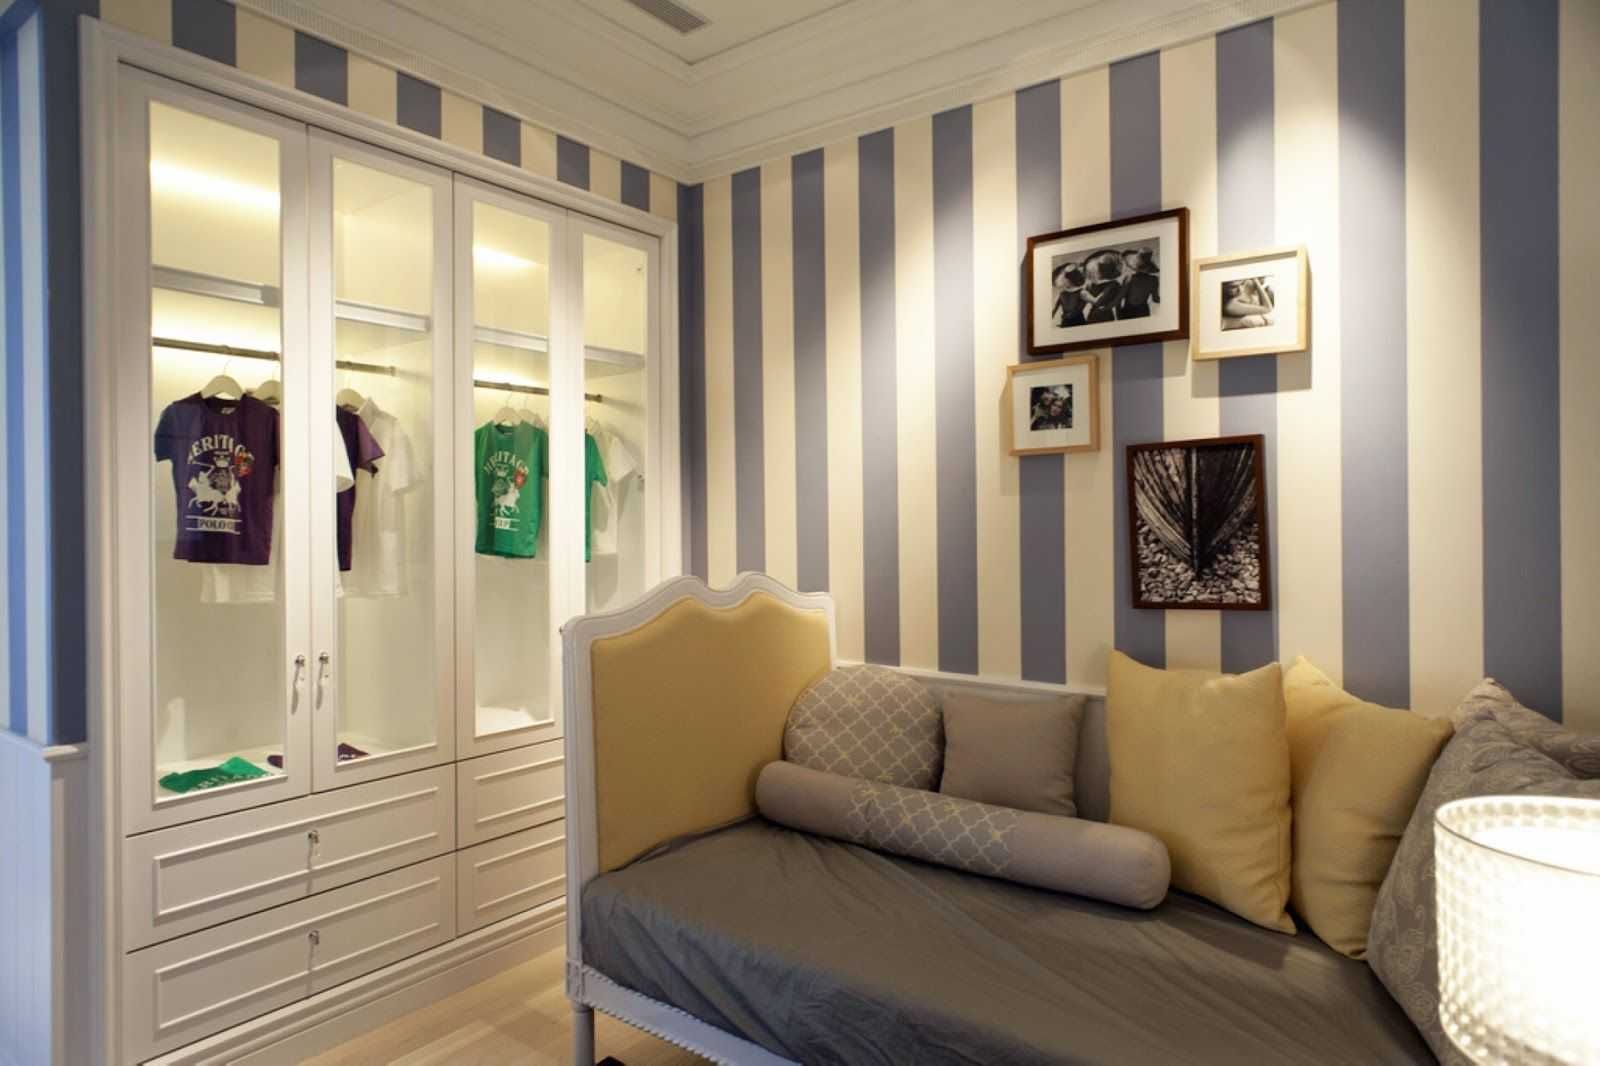 Taiwan penthouse condo decor dressing room food and travel pinterest dressing room - Food in the bedroom ideas ...